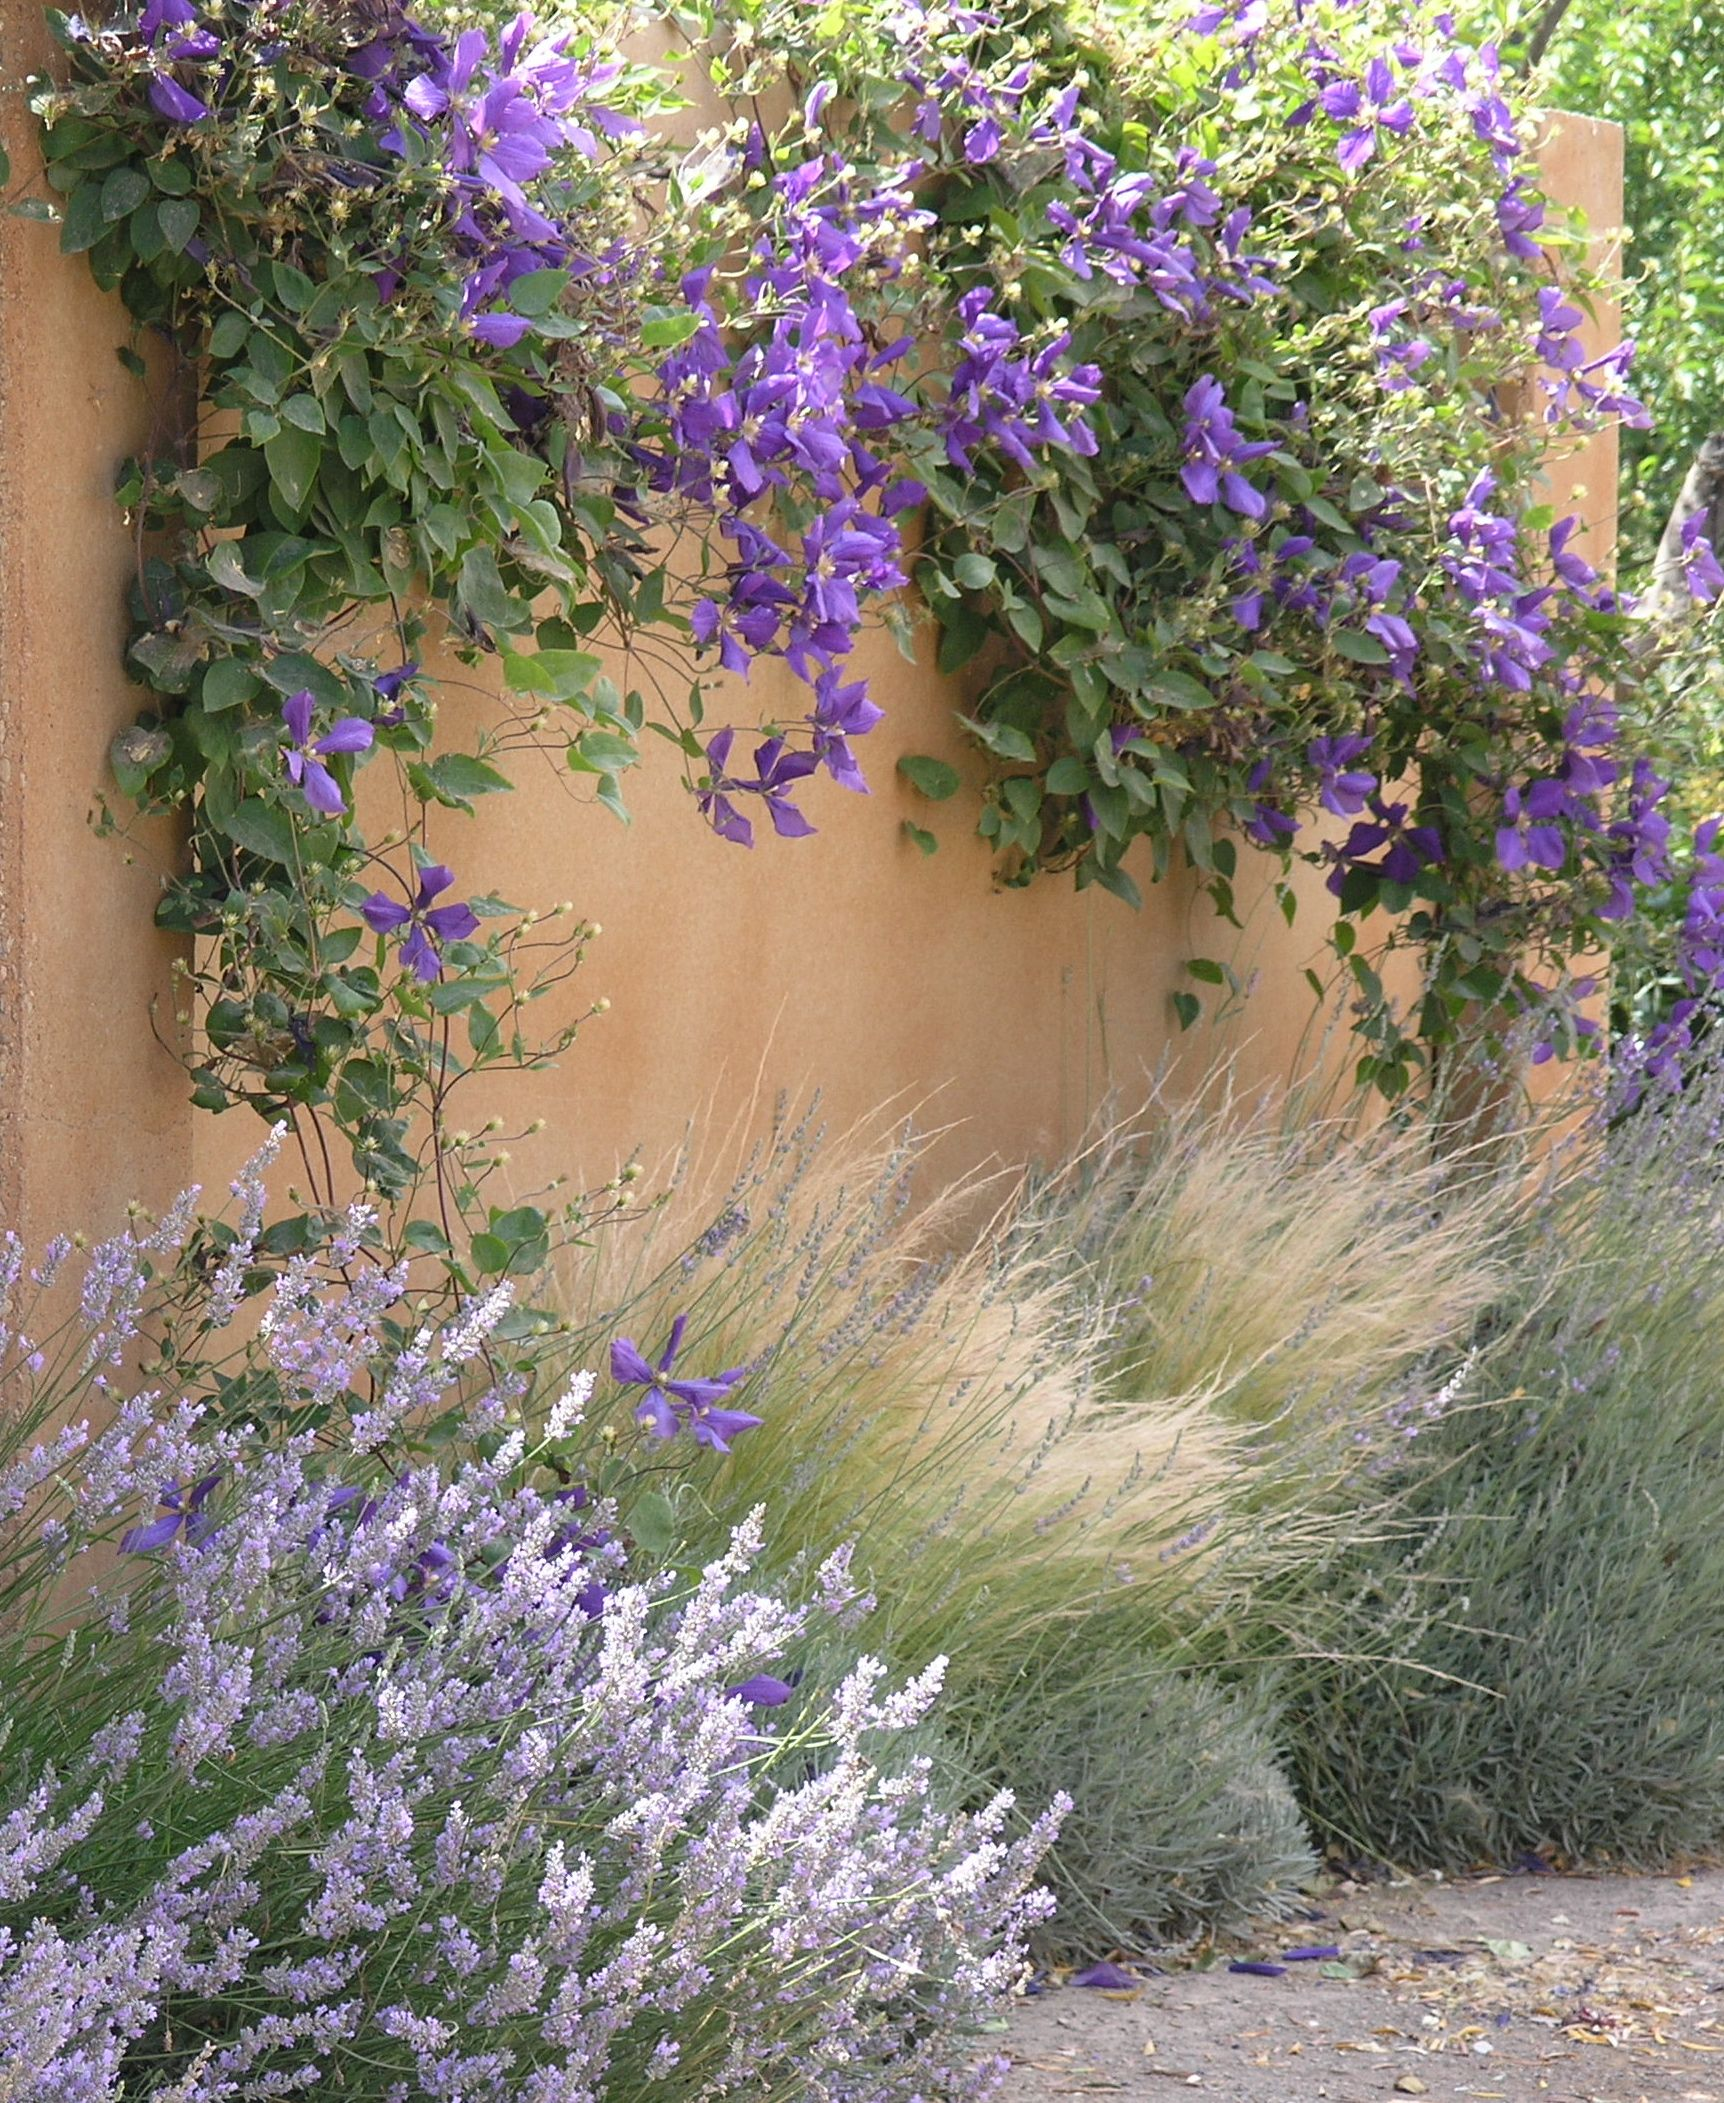 clematis lavender and grasses in a long plant bed or